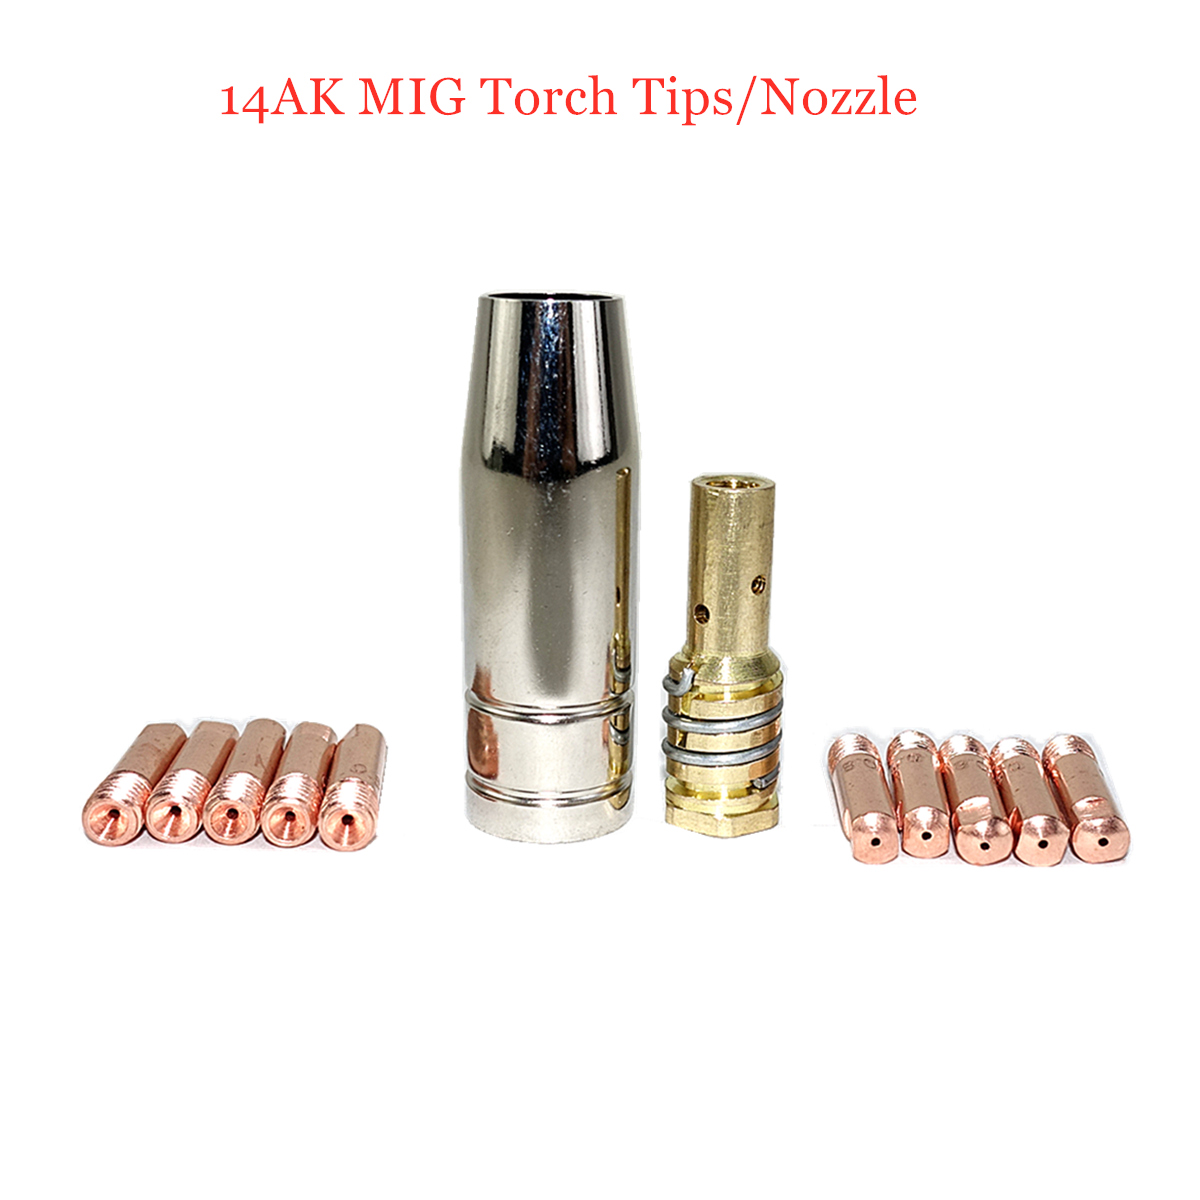 14AK Welding Torch Consumables 12pcs 0.6/0.8/0.9/1.0/1.2mm Gas Valve MIG Torch Gas Nozzle Tip Holder For MIG Welding Machine